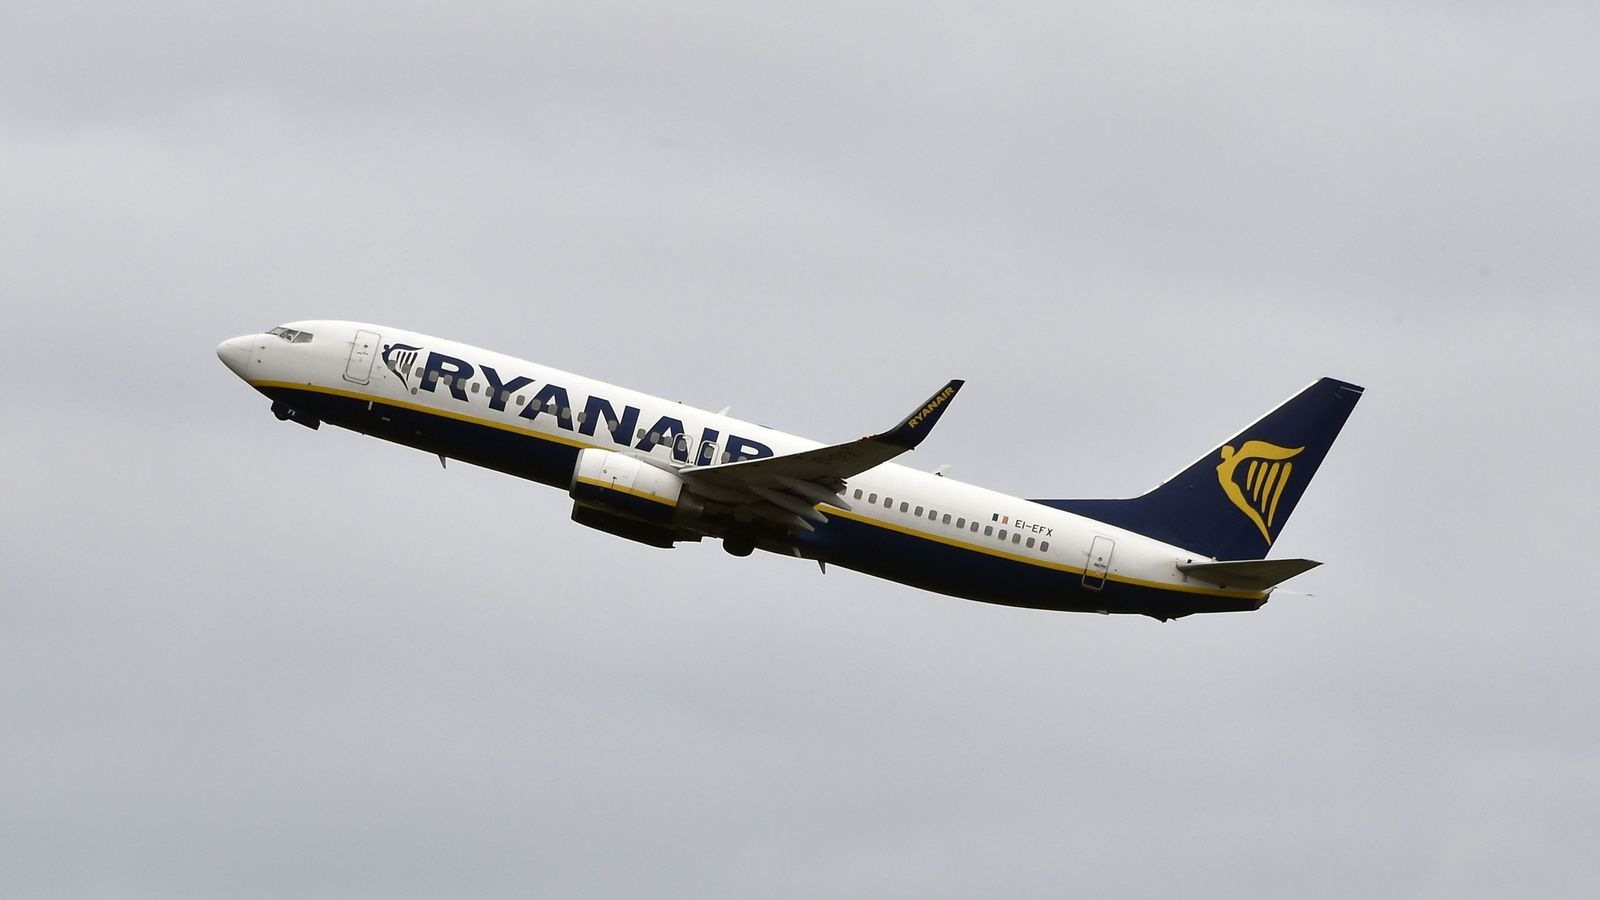 Ryanair cancels flights as pilots strike